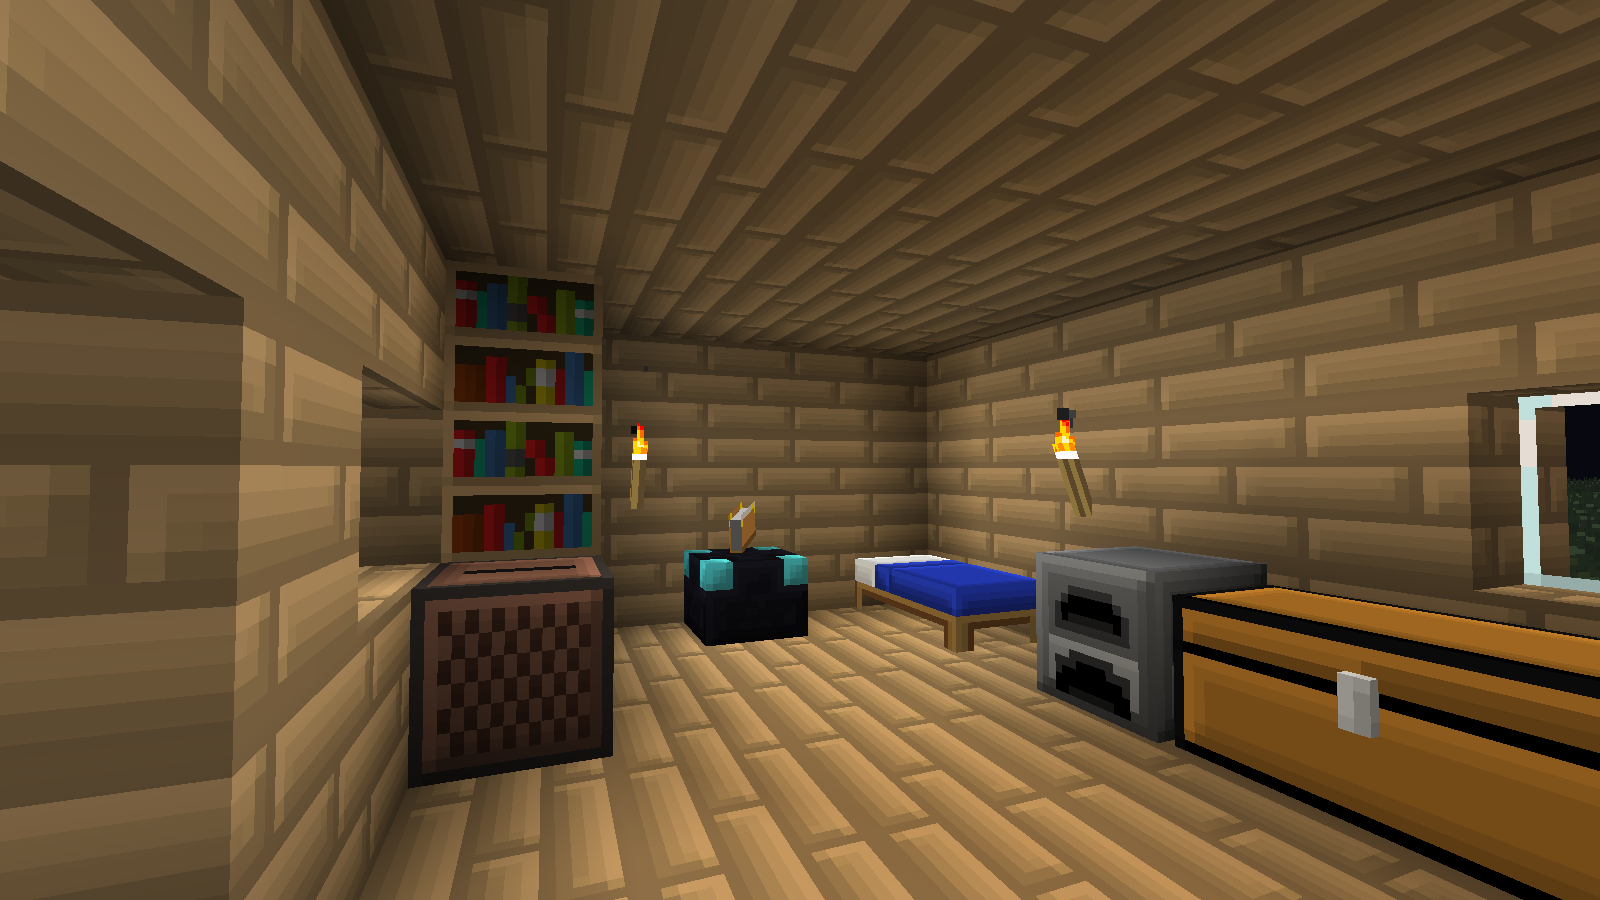 01f36  Boxcraft texture pack 2 [1.7.2/1.6.4] [16x] BoxCraft Texture Pack Download